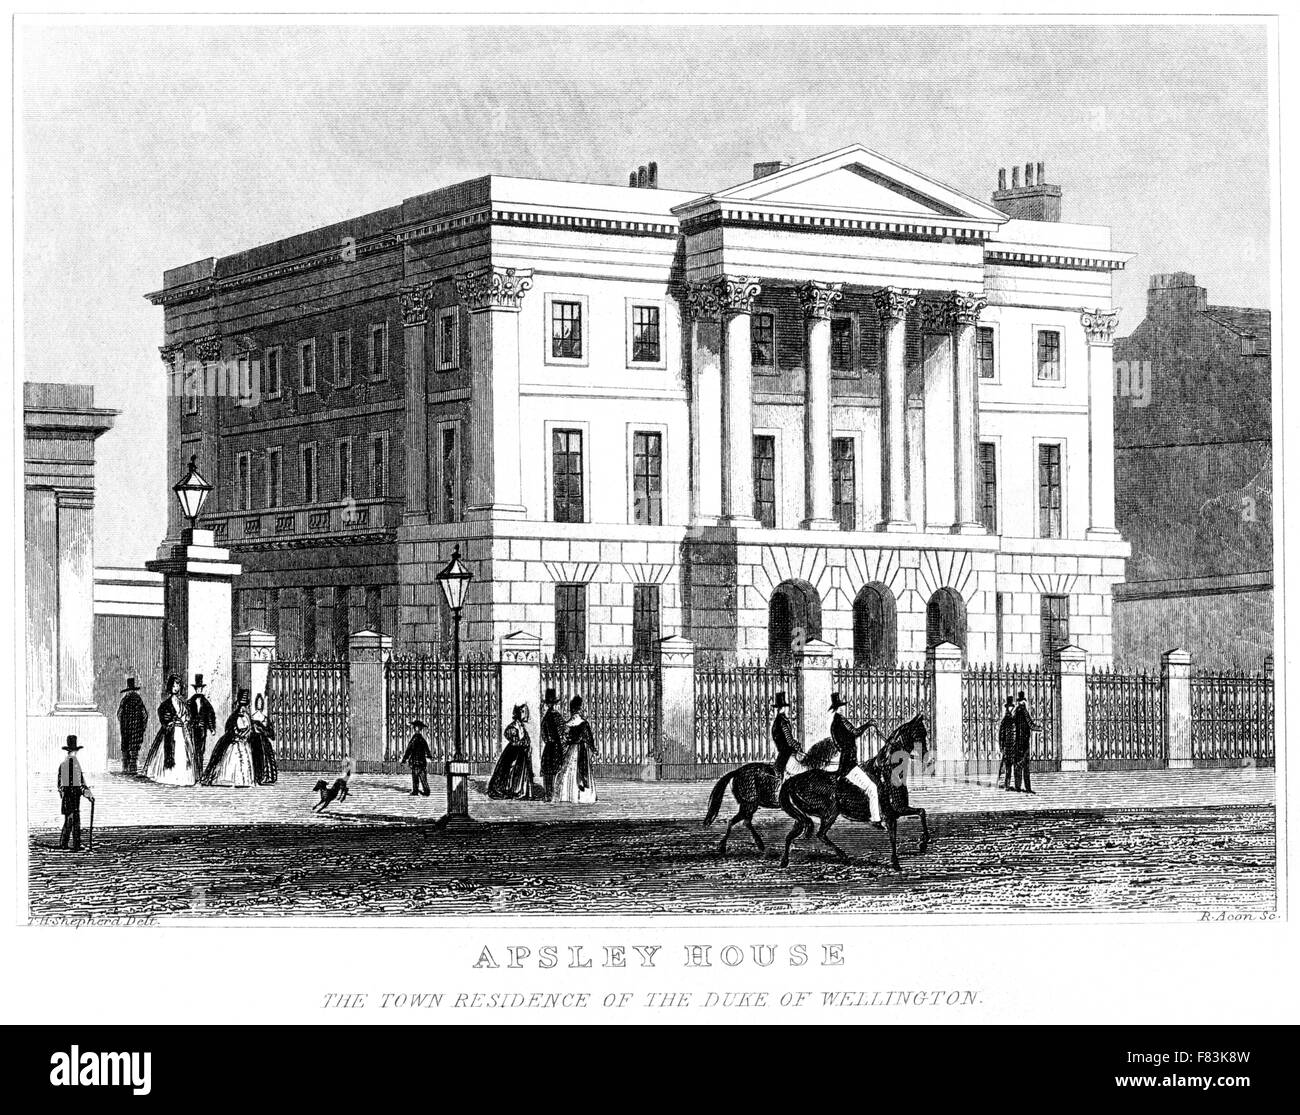 An engraving of Apsley House, The Town Residence of the Duke of Wellington scanned at high res from a book printed - Stock Image